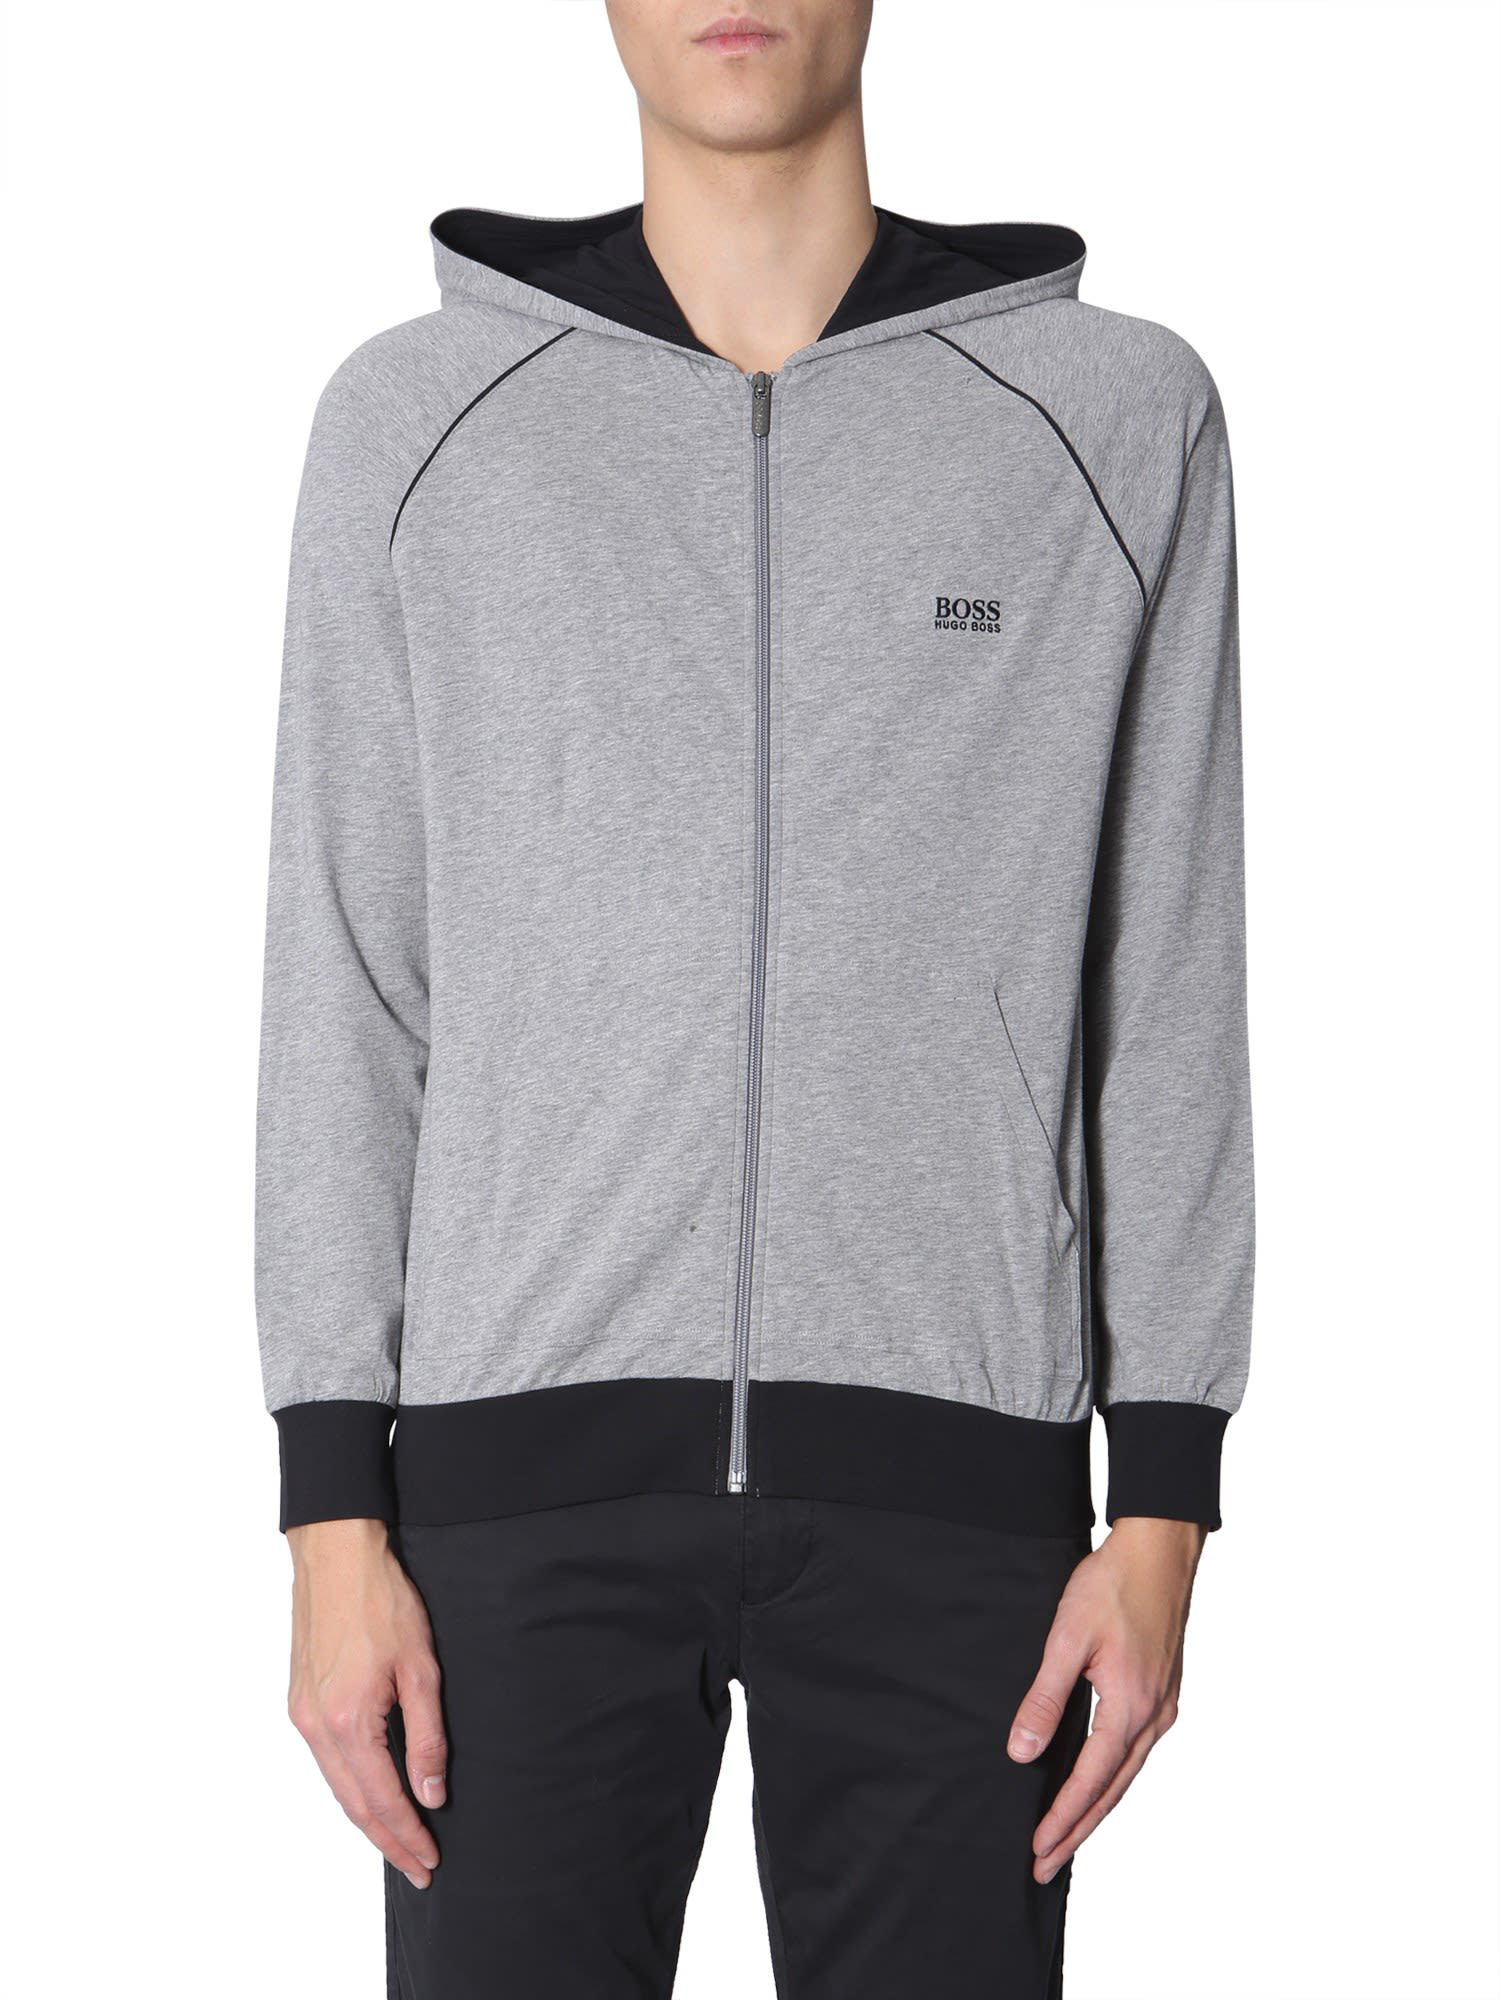 sale more photos best price Mix & Match Jacket H Sweatshirt in Grigio